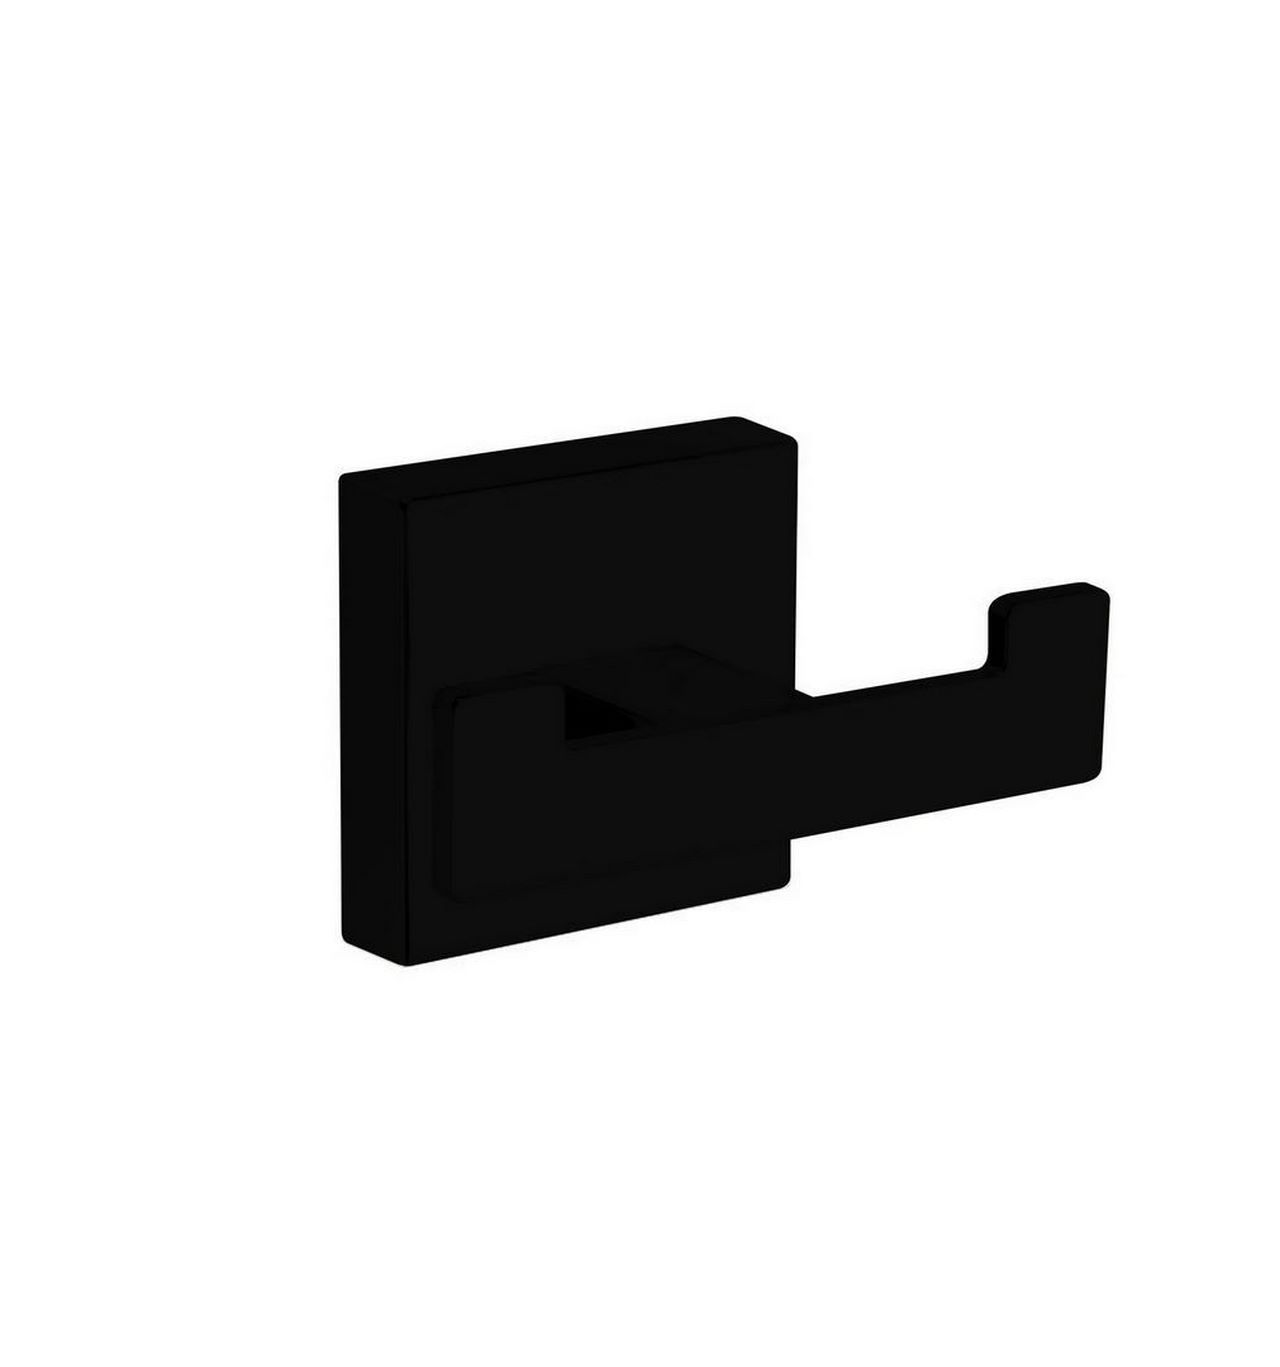 Aqua Plato, Kubebath, Matte Black Double Towel Hook